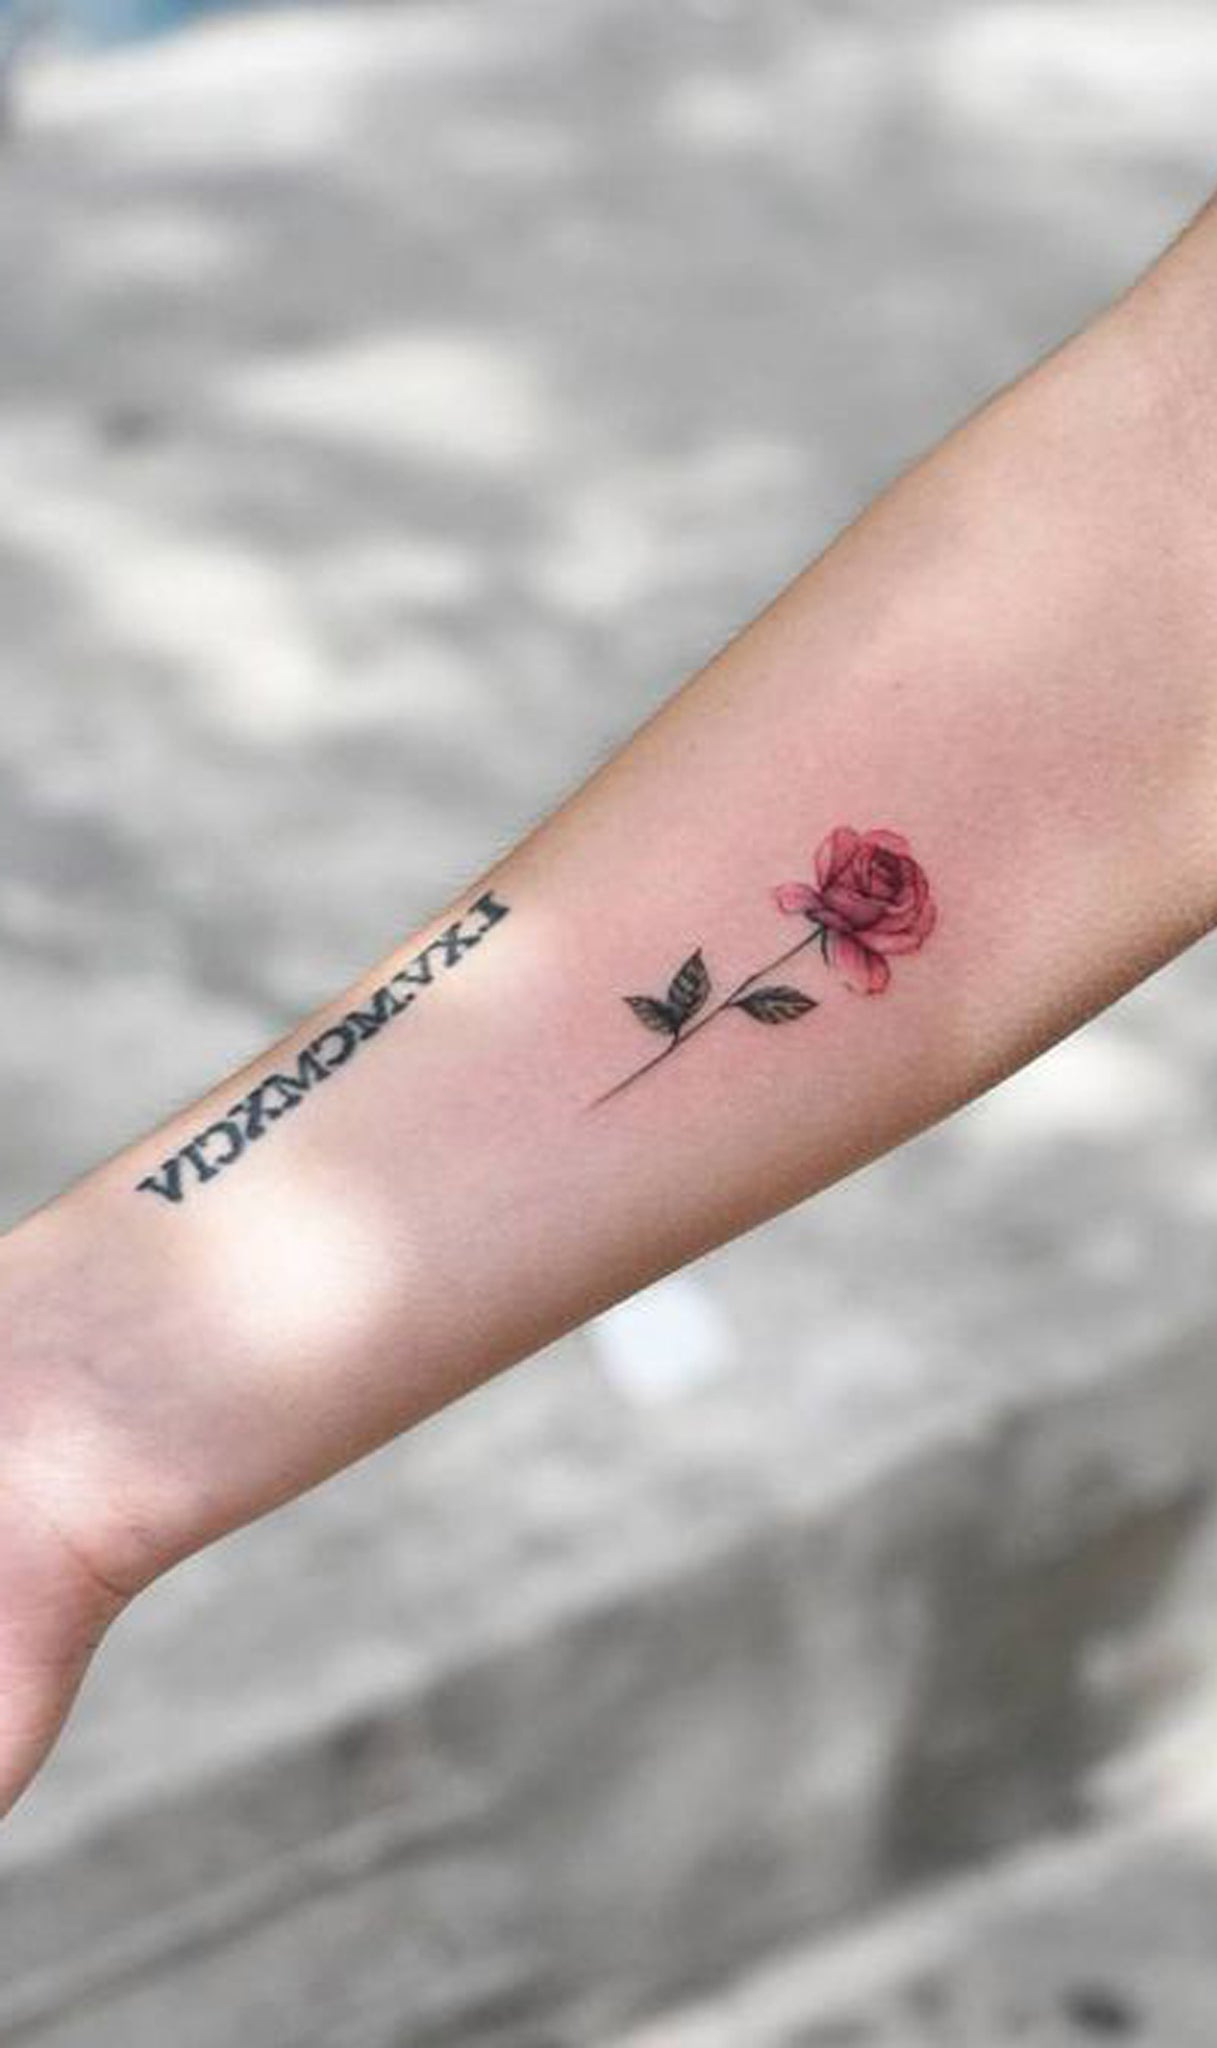 Cute Watercolor Small Rose Forearm Tattoo Ideas for Women - www.MyBodiArt.com #tattoos